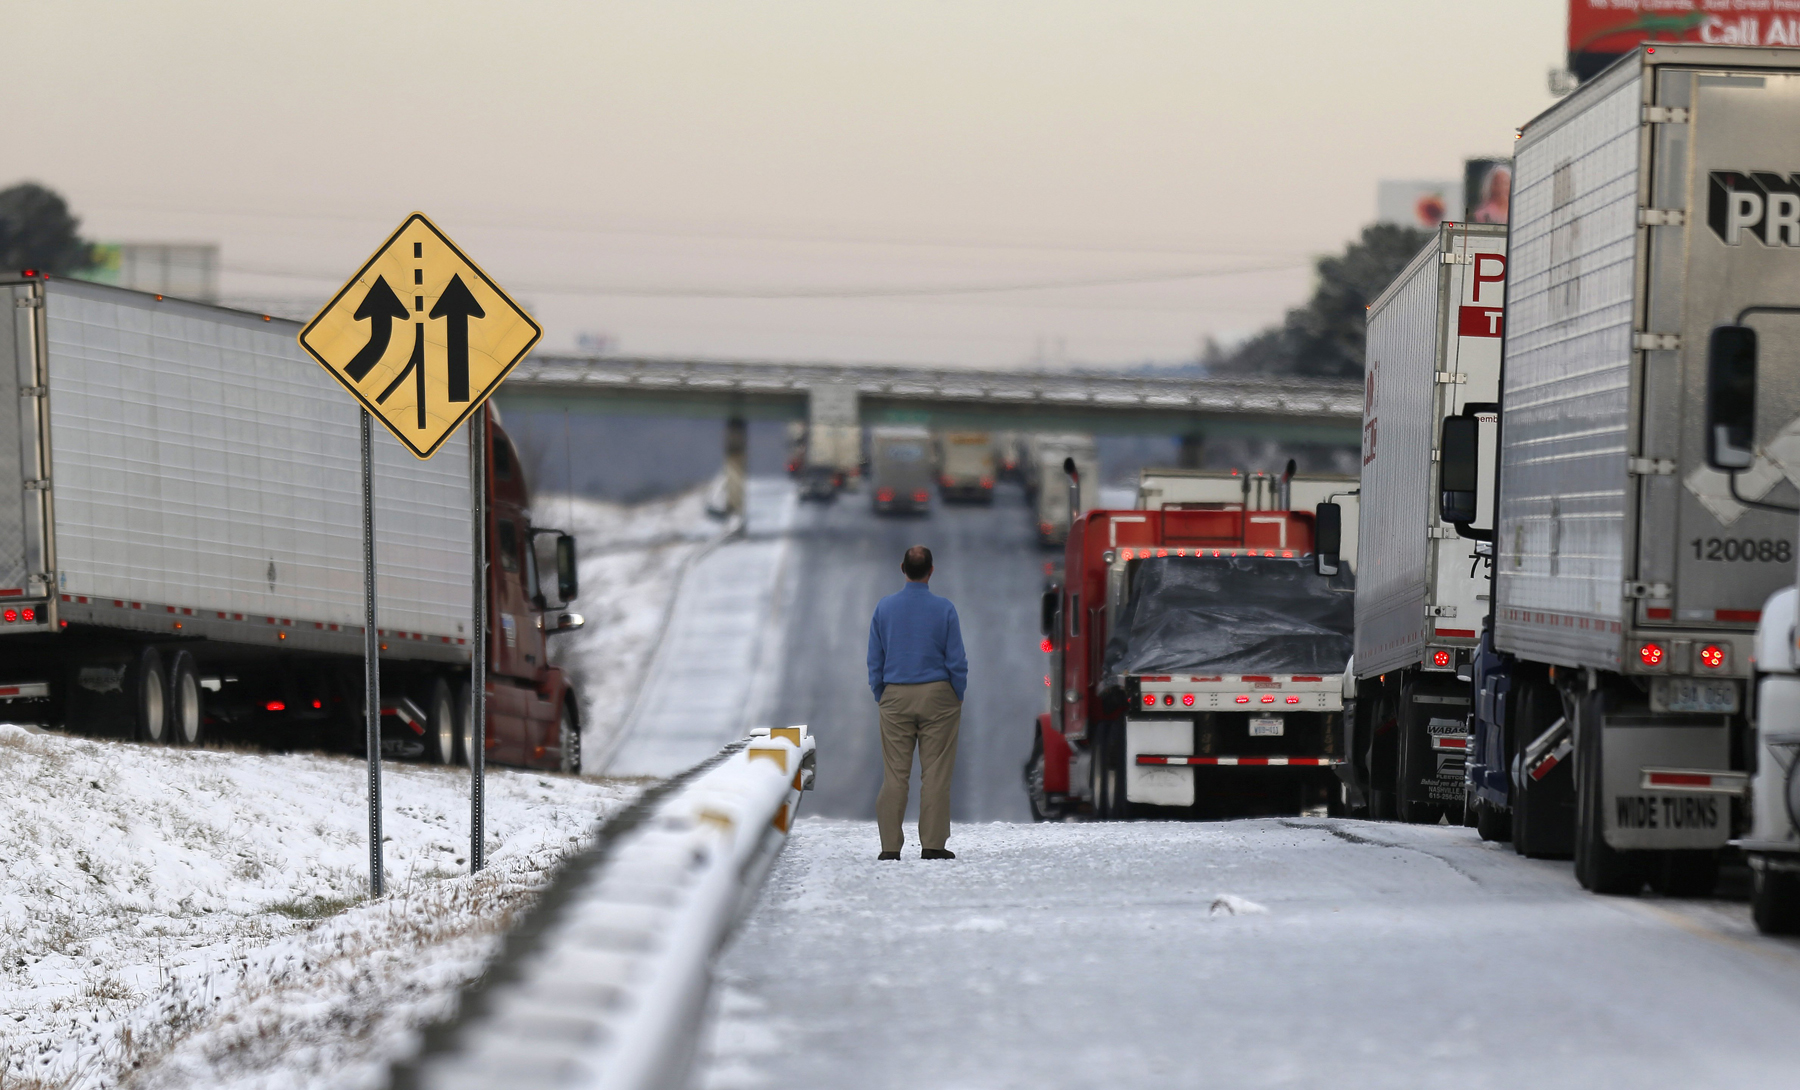 A man stands on the frozen roadway as he waits for traffic to clear along Interstate 75 Wednesday, Jan. 29, 2014, in Macon, Ga.